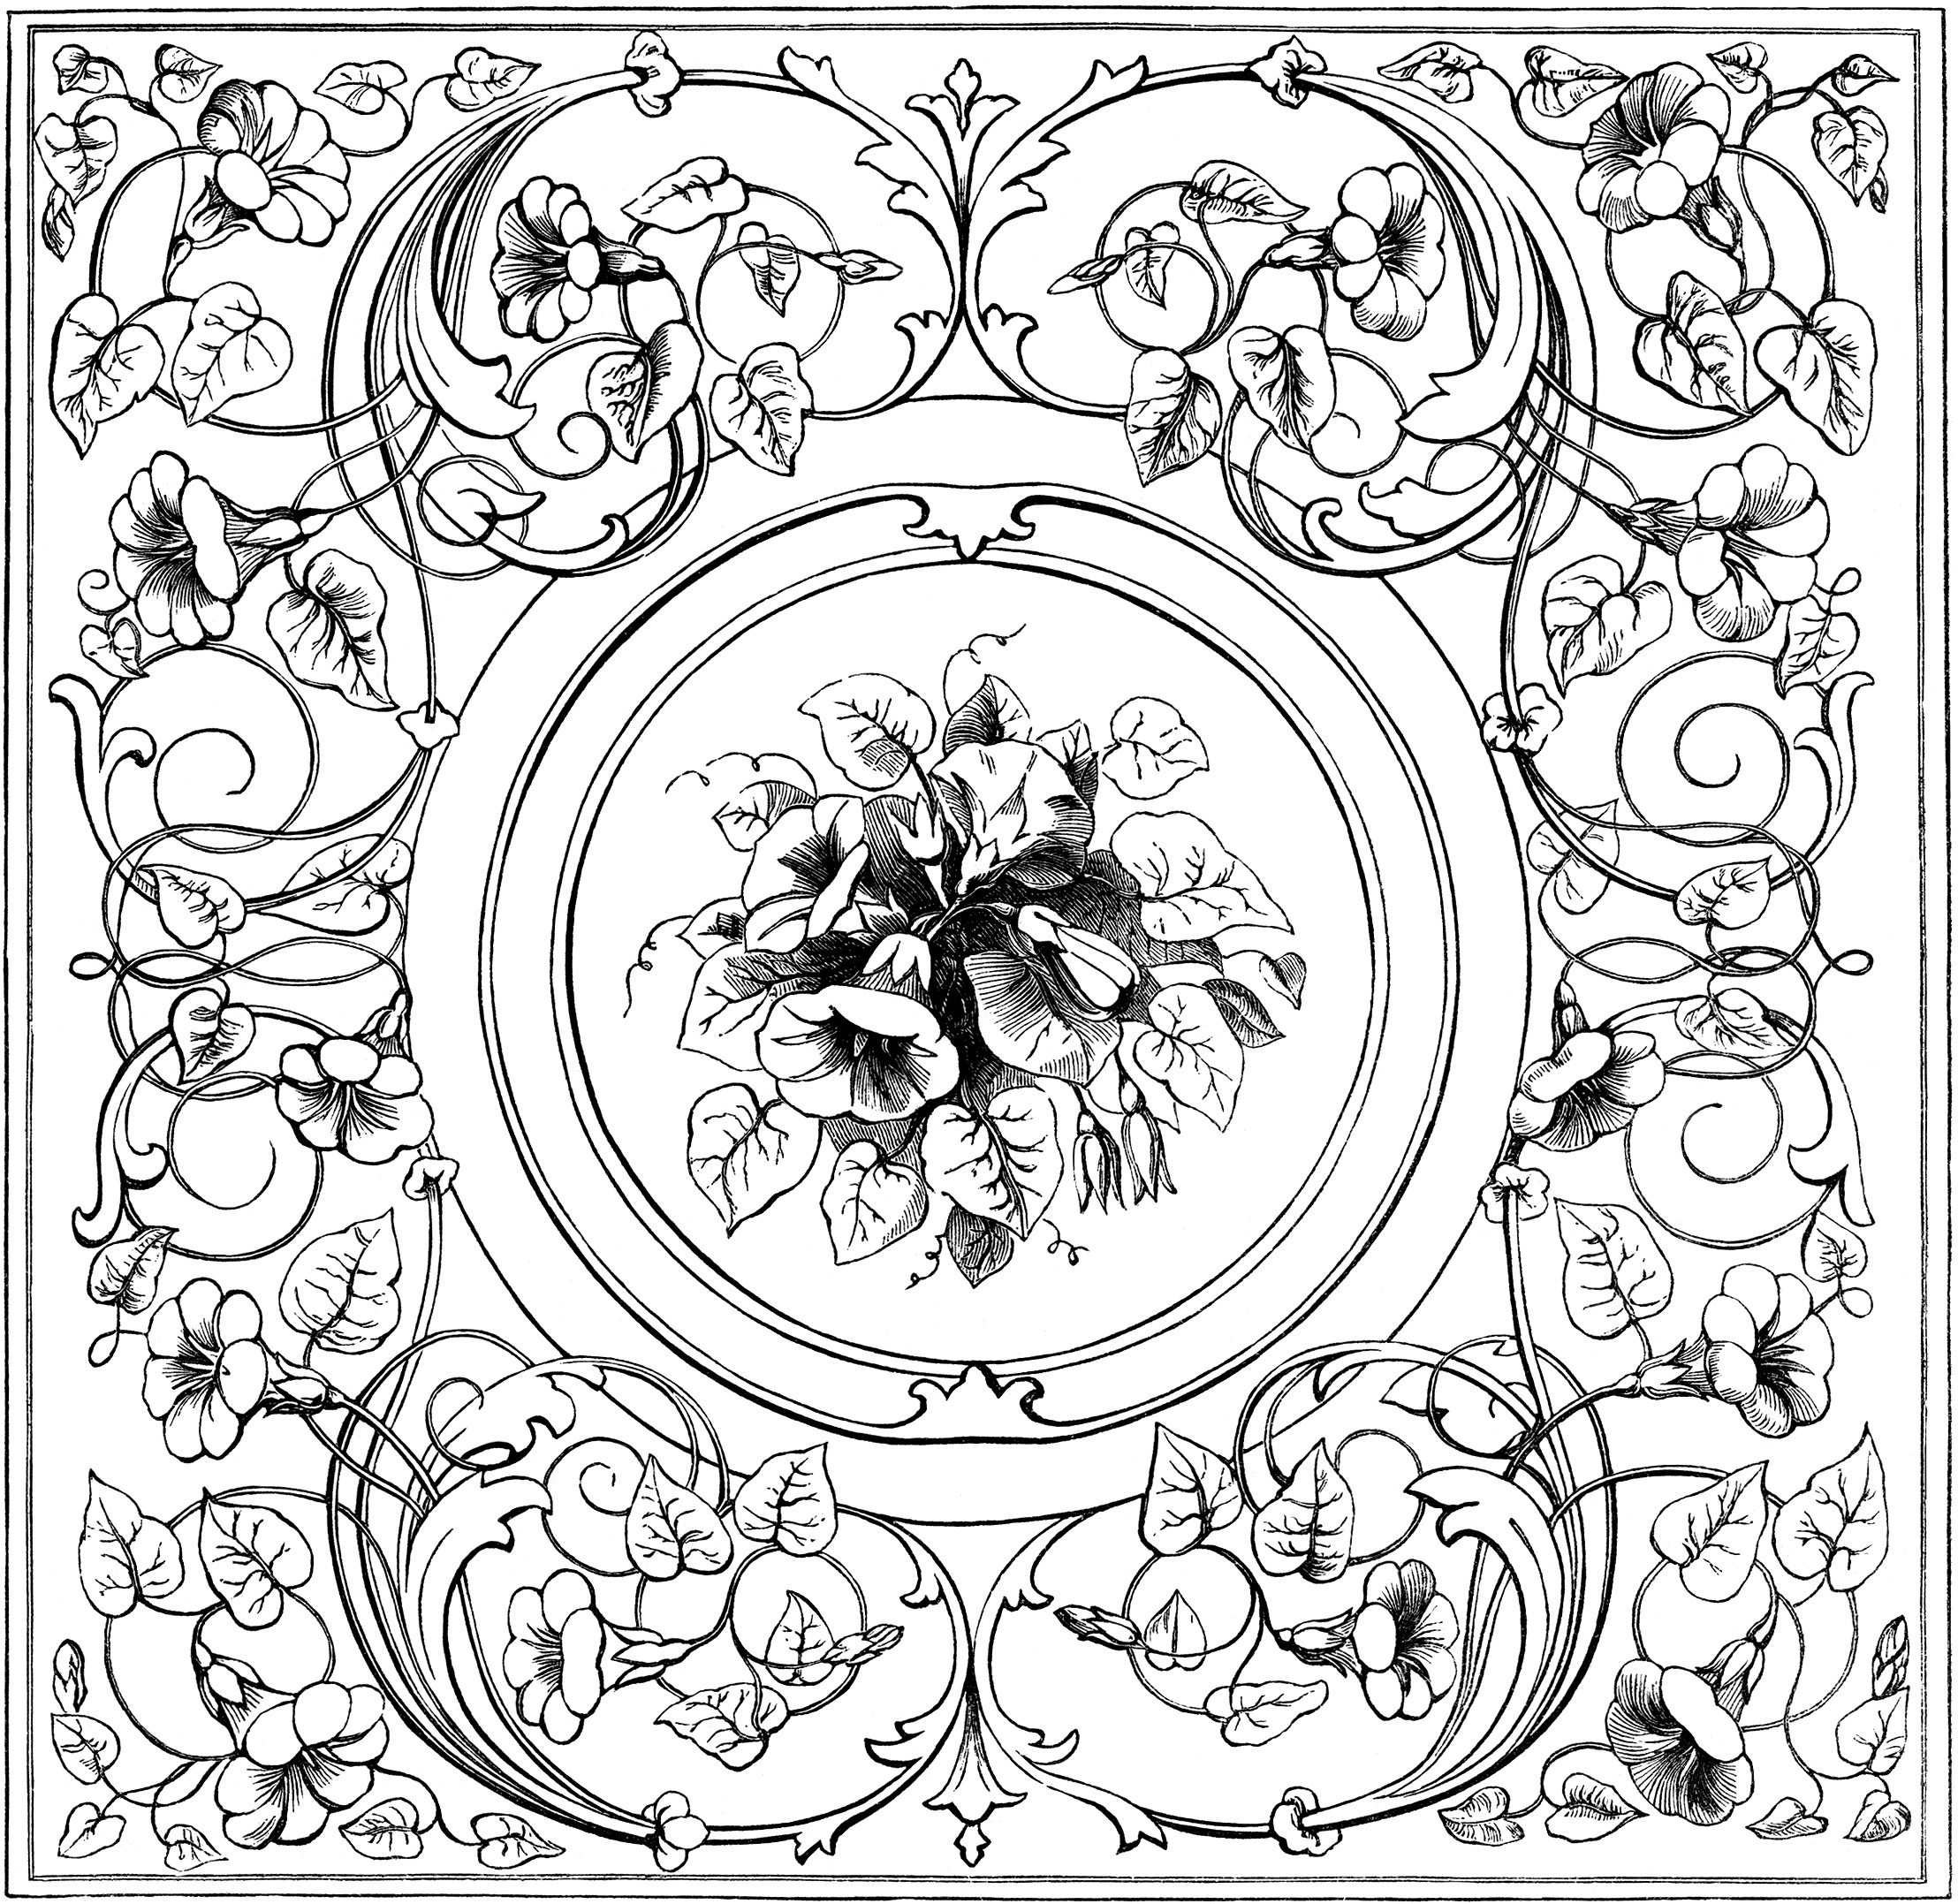 black and white clip art, ornate swirl design, ornamental floral sketch, old fashioned embroidery pattern, vintage fancy frame